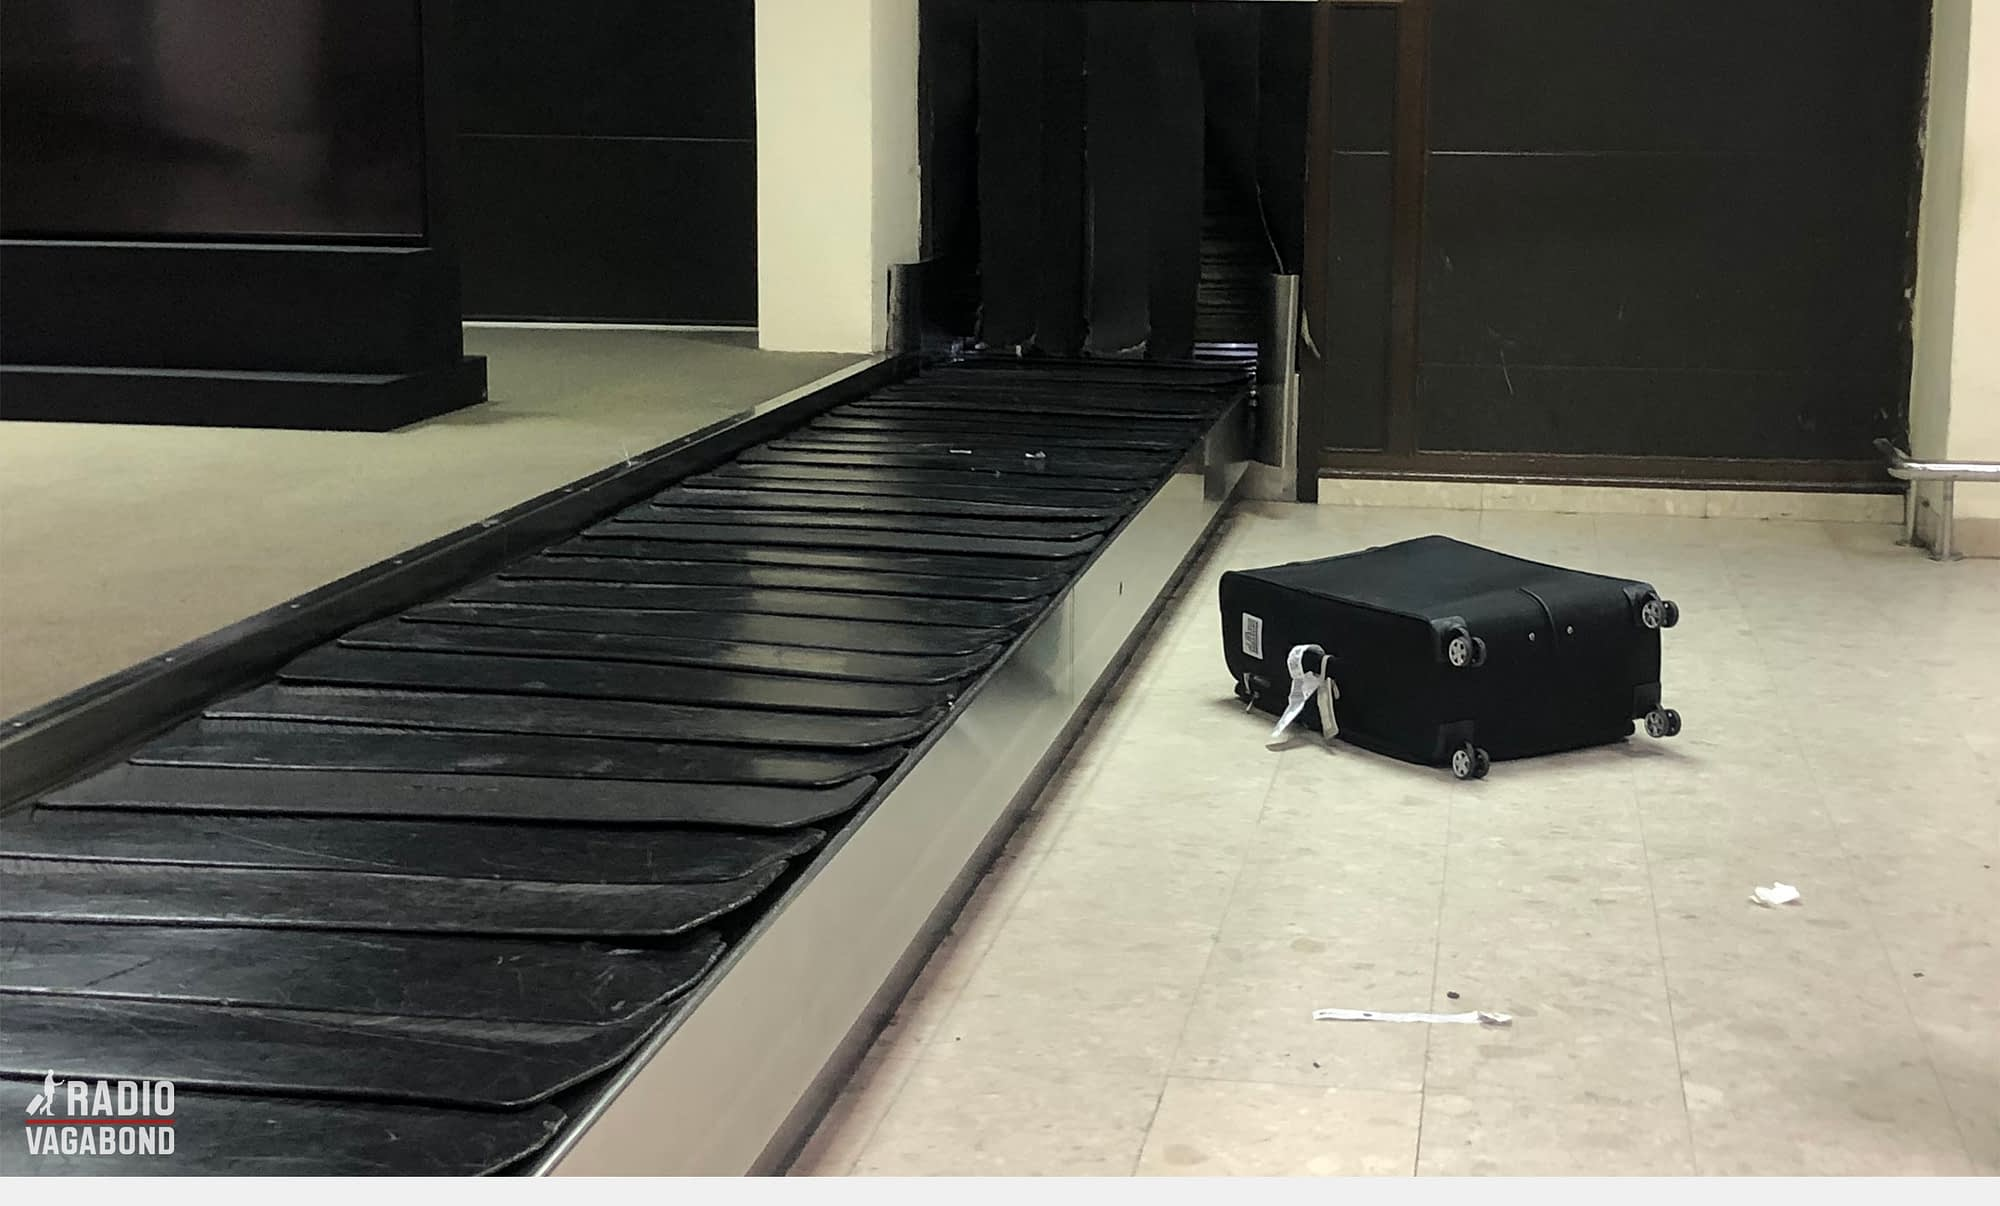 Suitcase was there